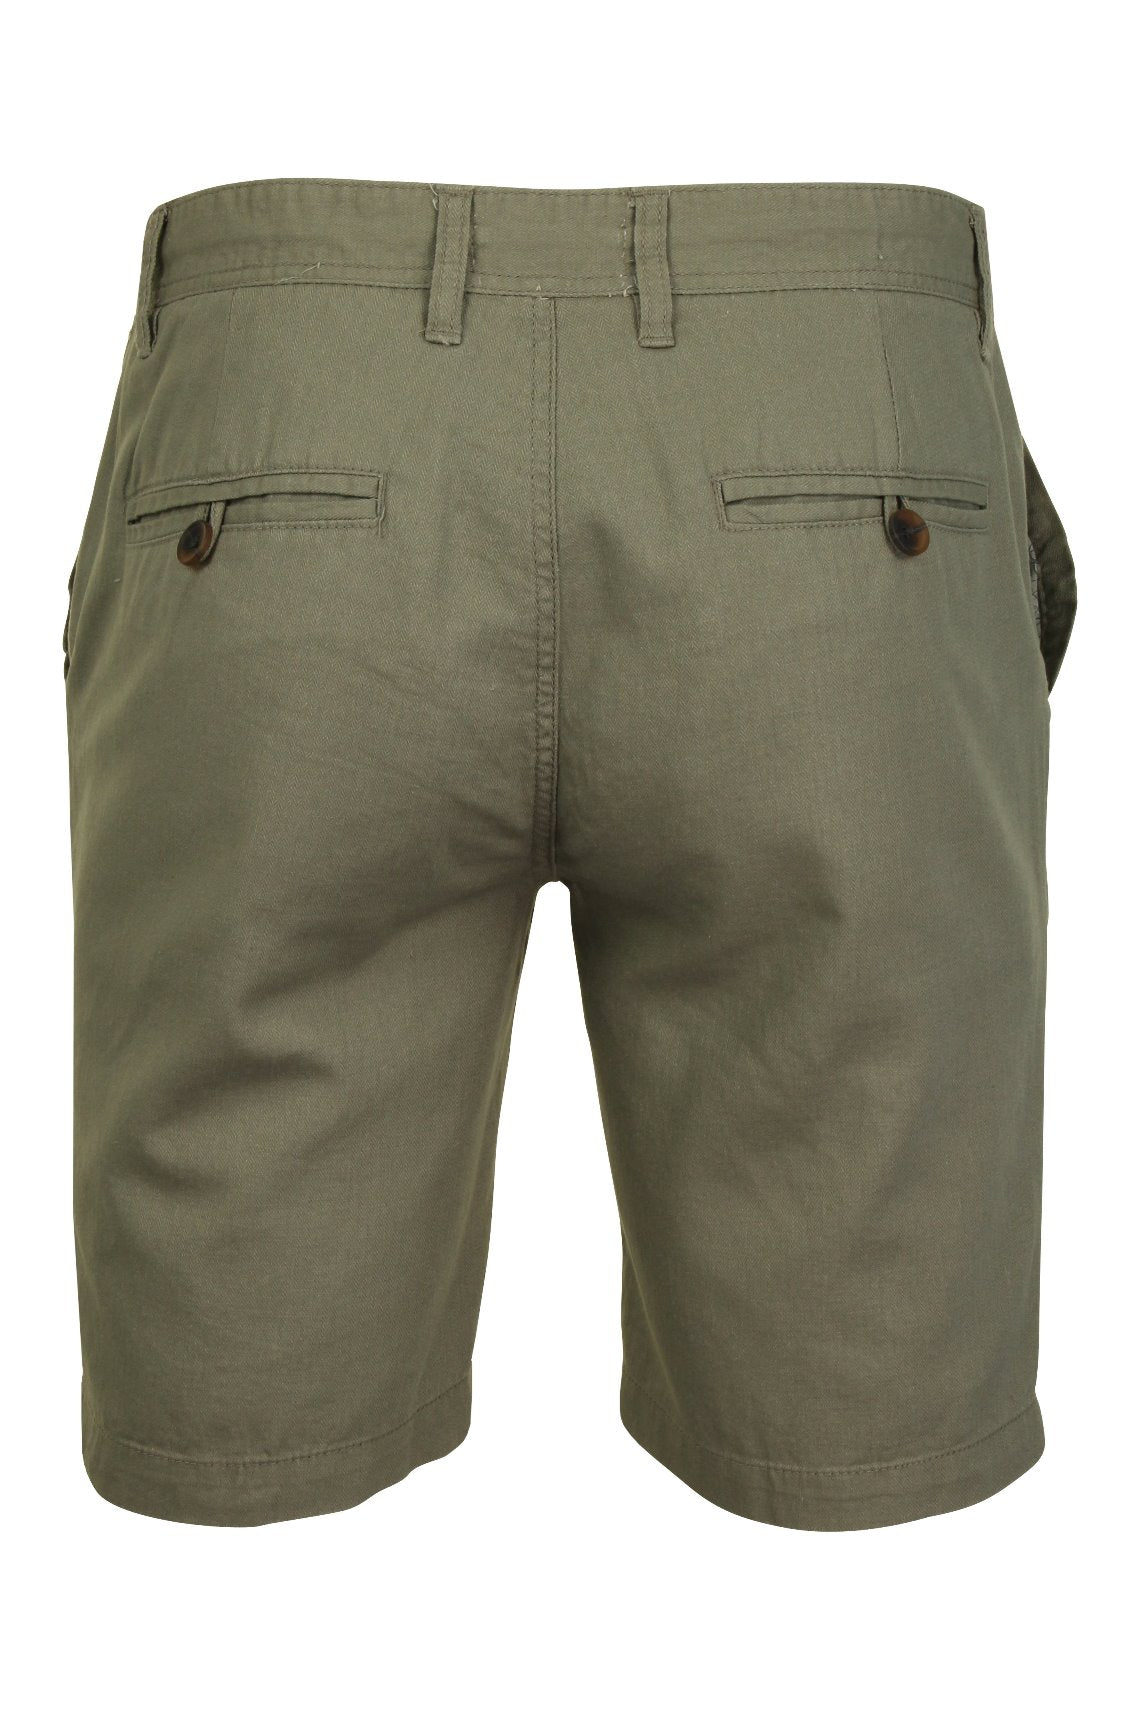 Mens Linen Mix Chino Shorts by Xact-3